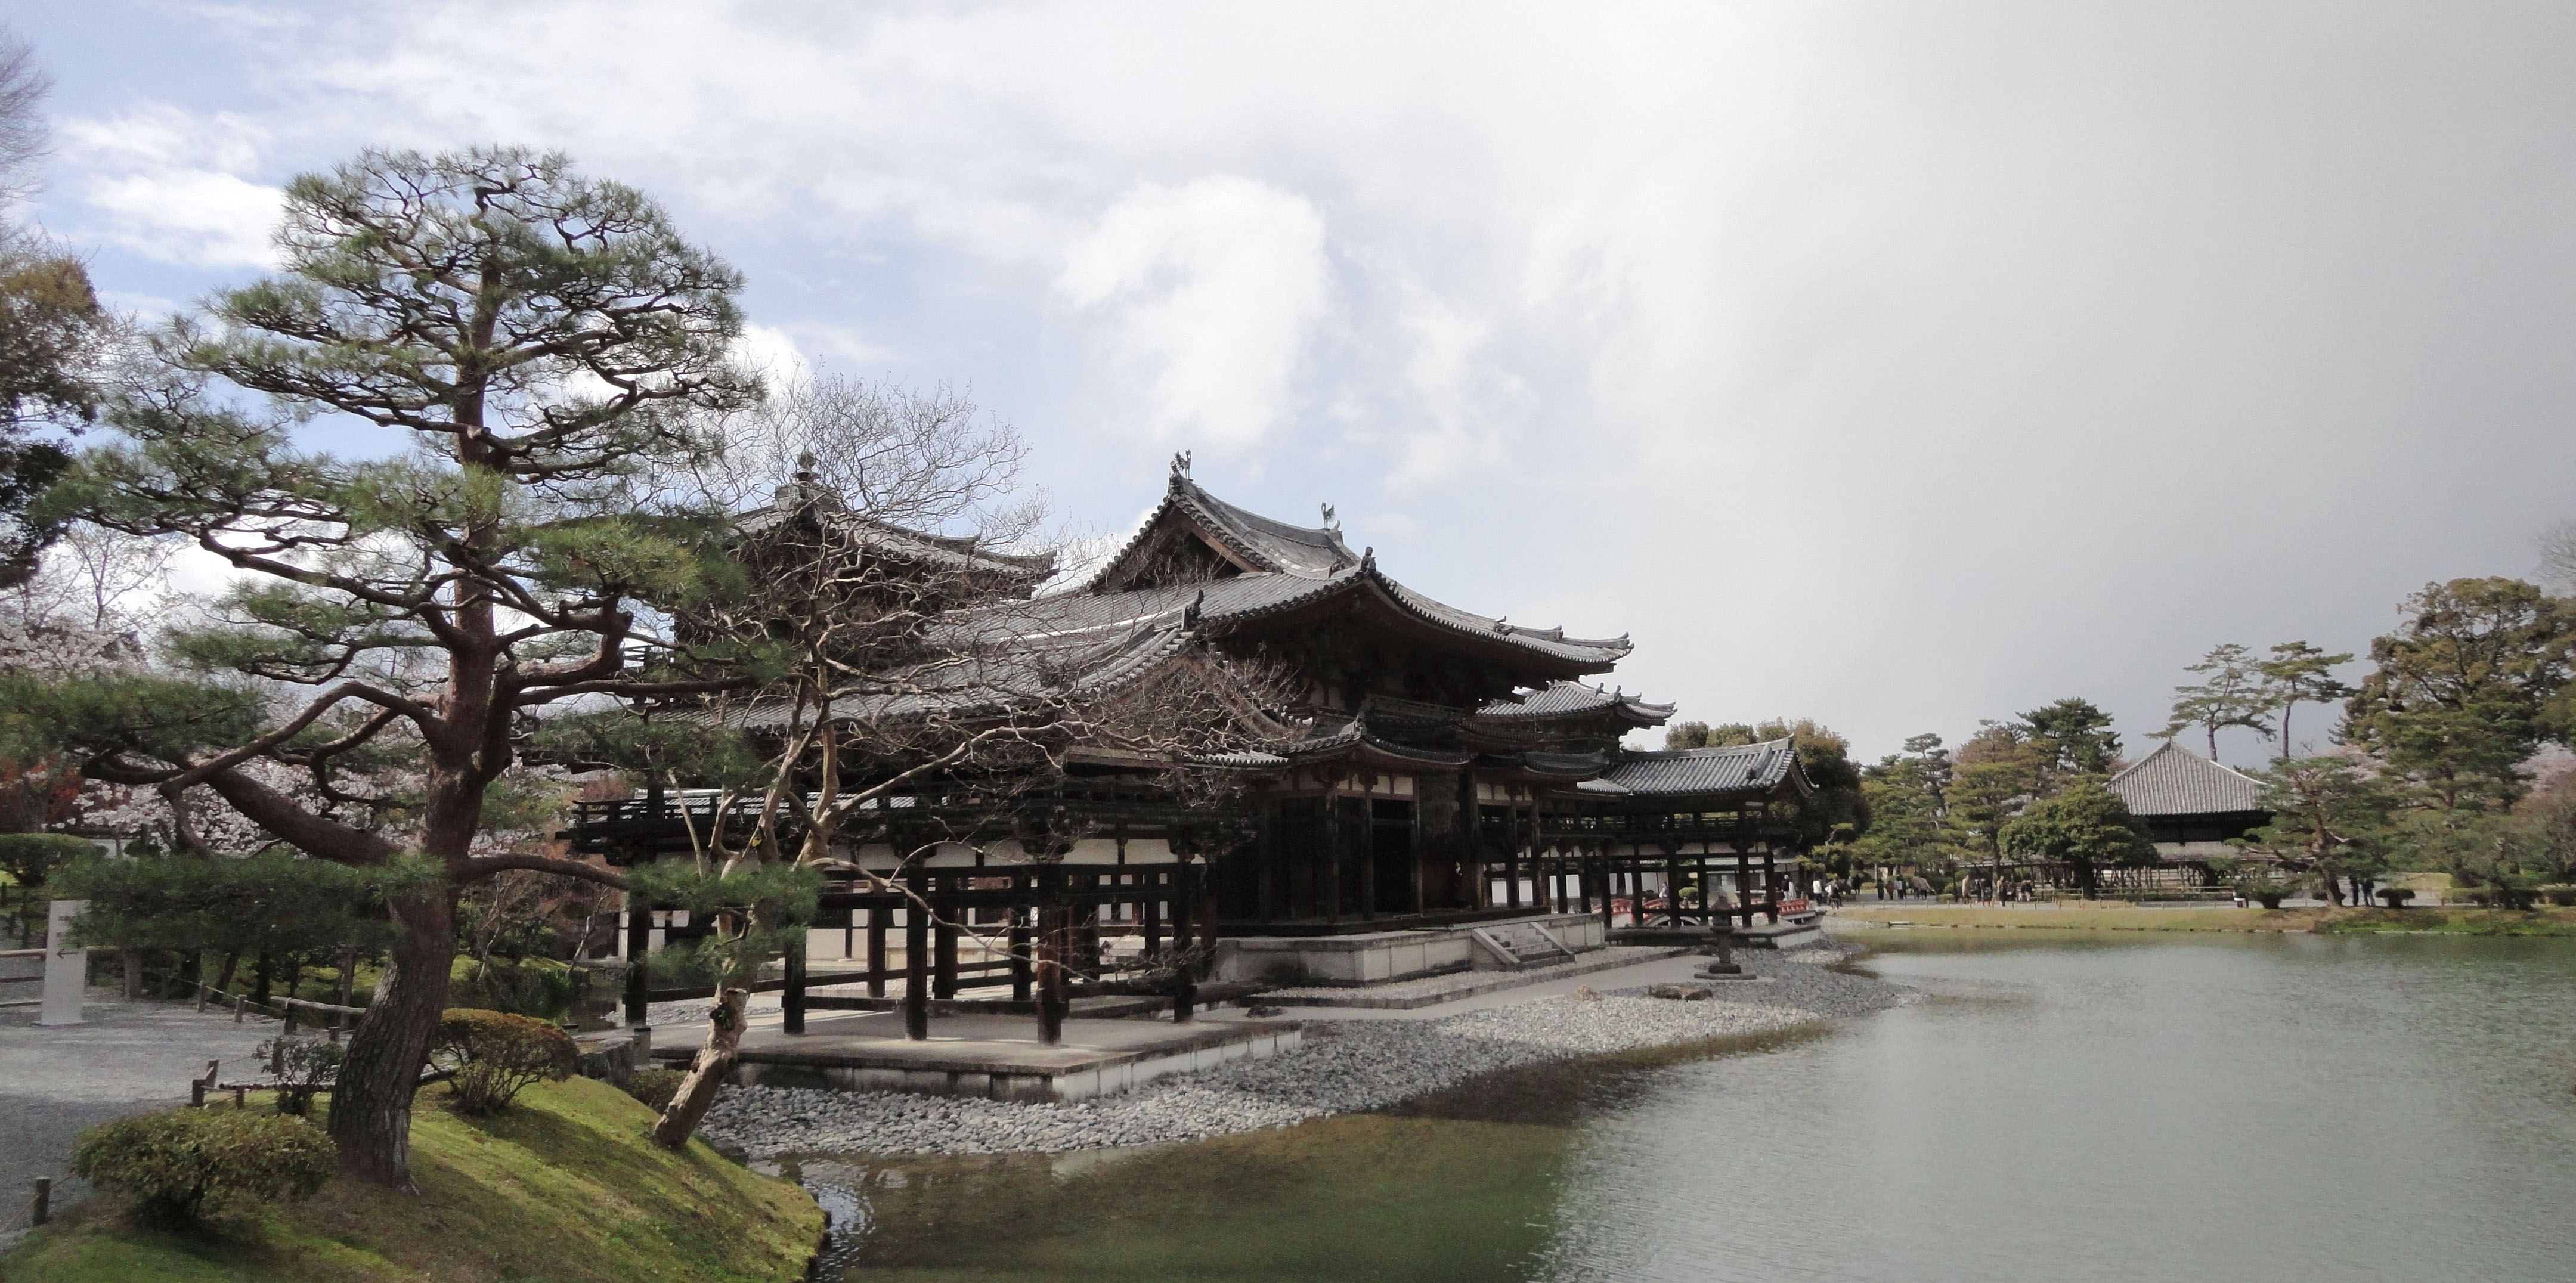 Byodo in Buddhist temple right side entrance Phoenix Hall Kyoto Japan 01